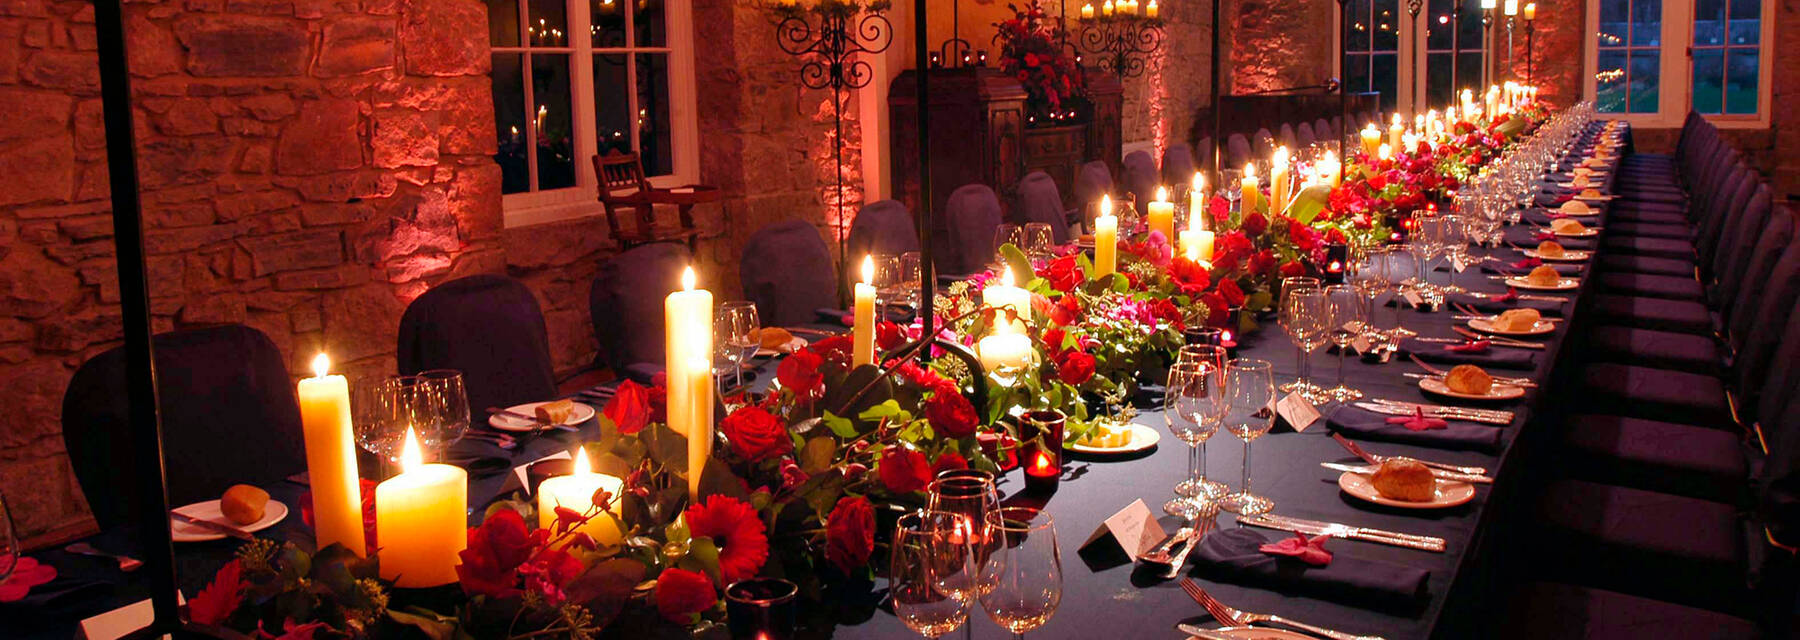 A dining room at Mar Lodge set for a private dinner